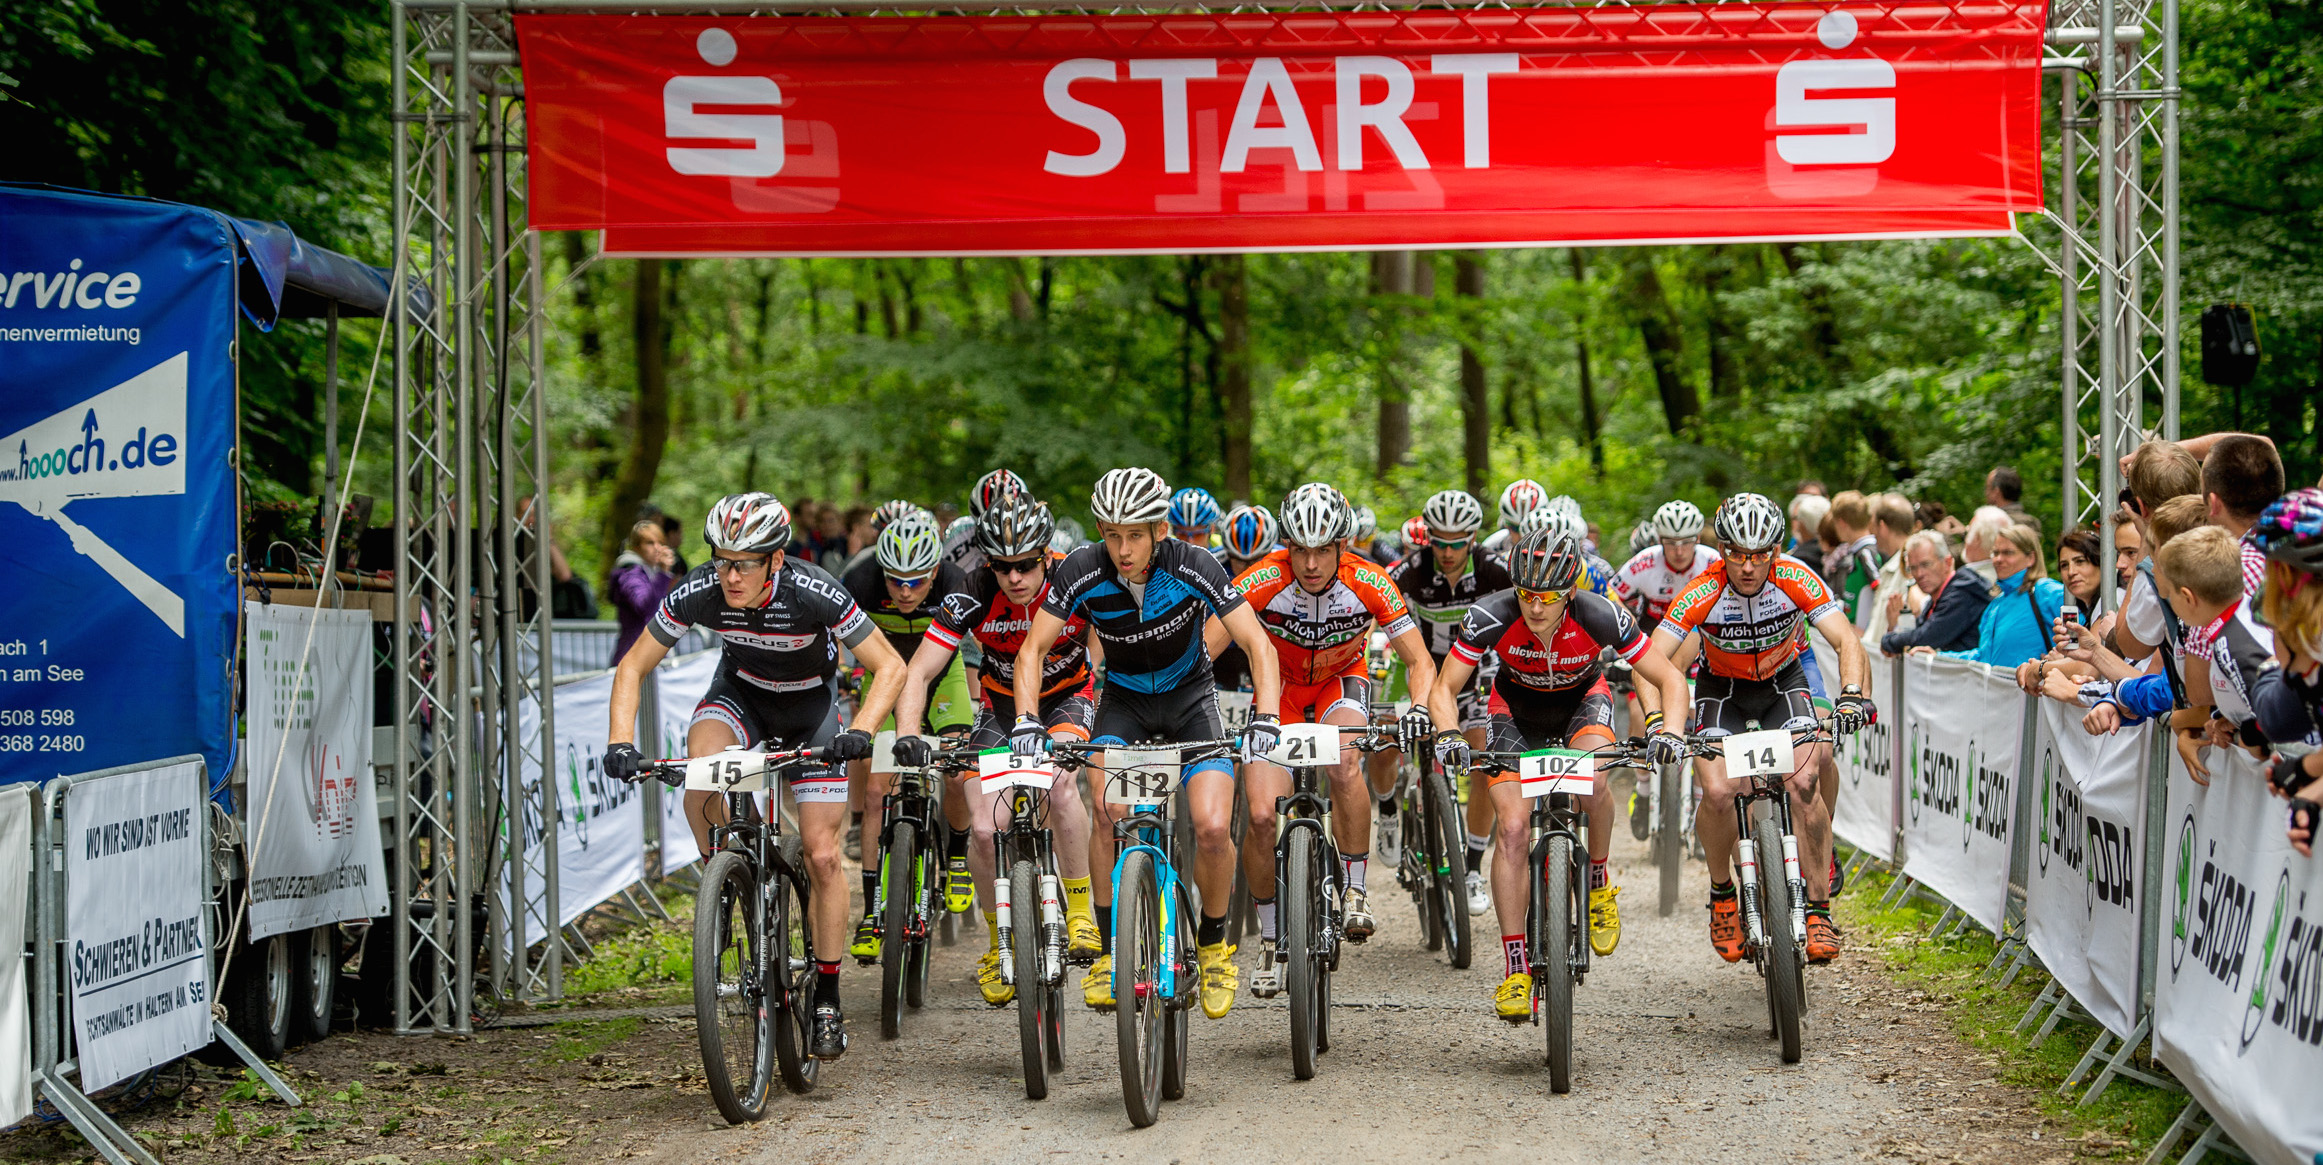 140622_Schulte-Luenzum_Zwiehoff_start_acrossthecountry_mountainbike_by_Kuestenbrueck_GER_HalternAmSee_XC_ME_start